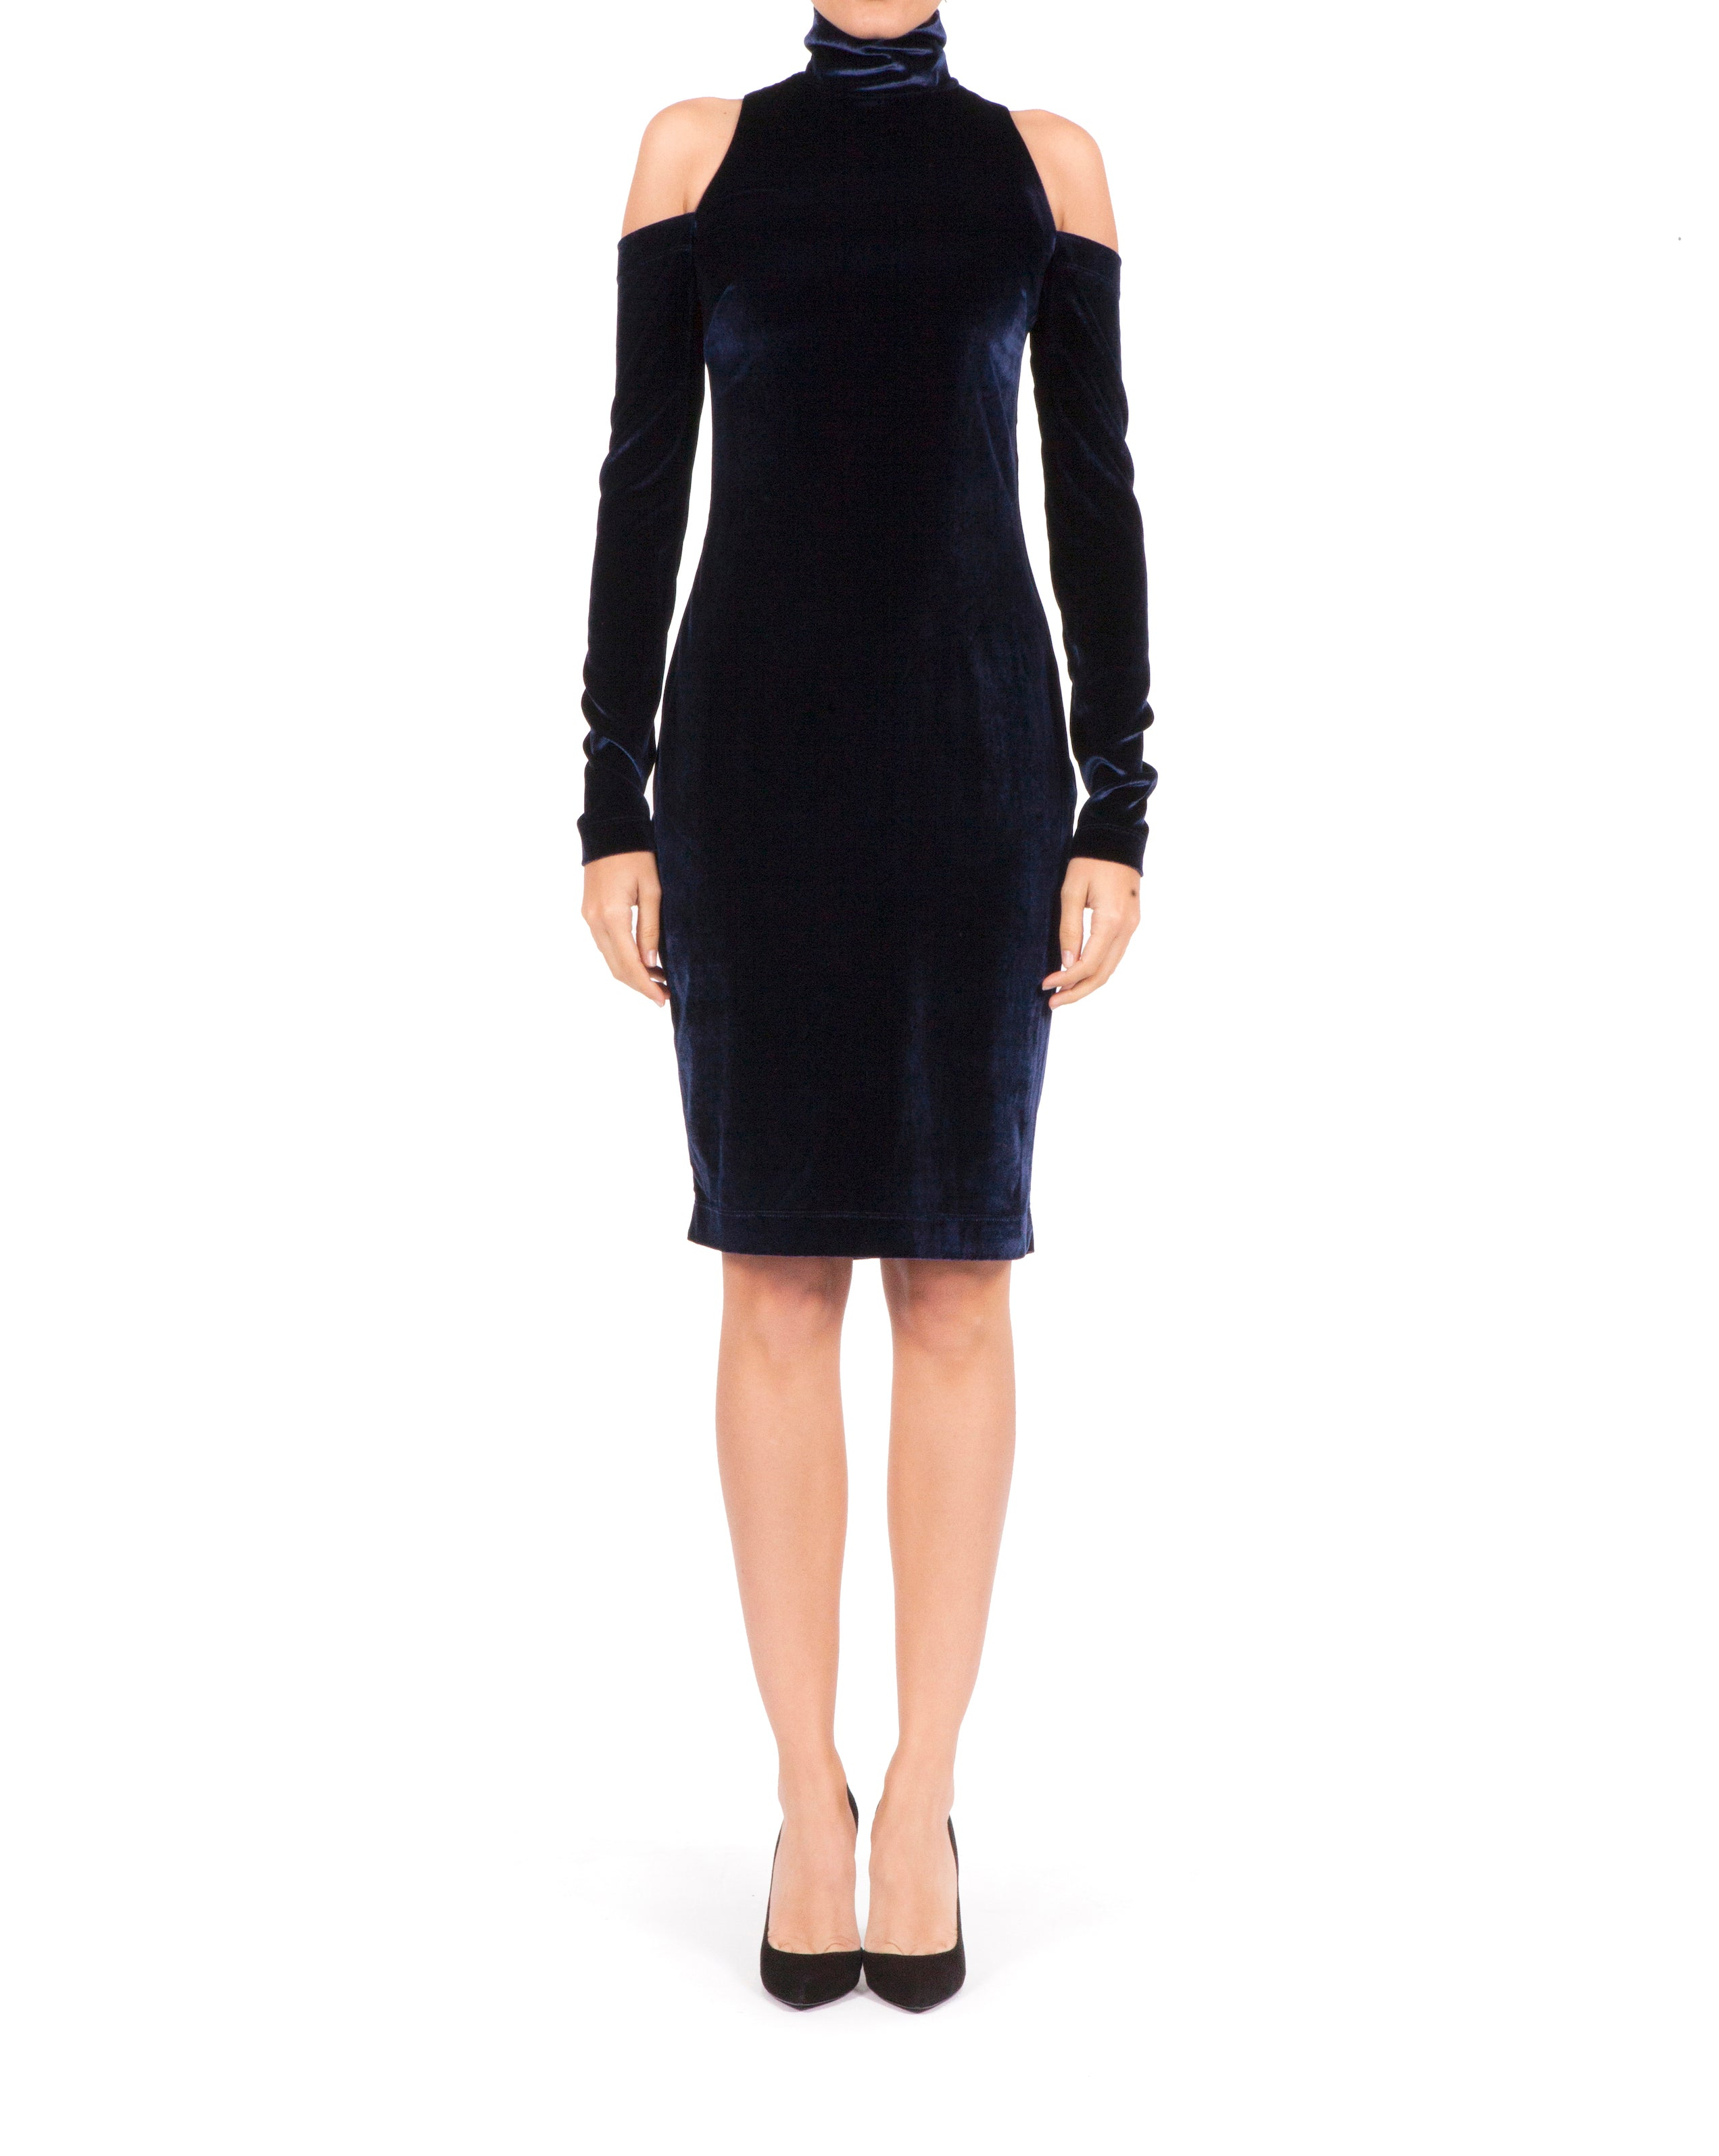 Bardot Dress - Navy